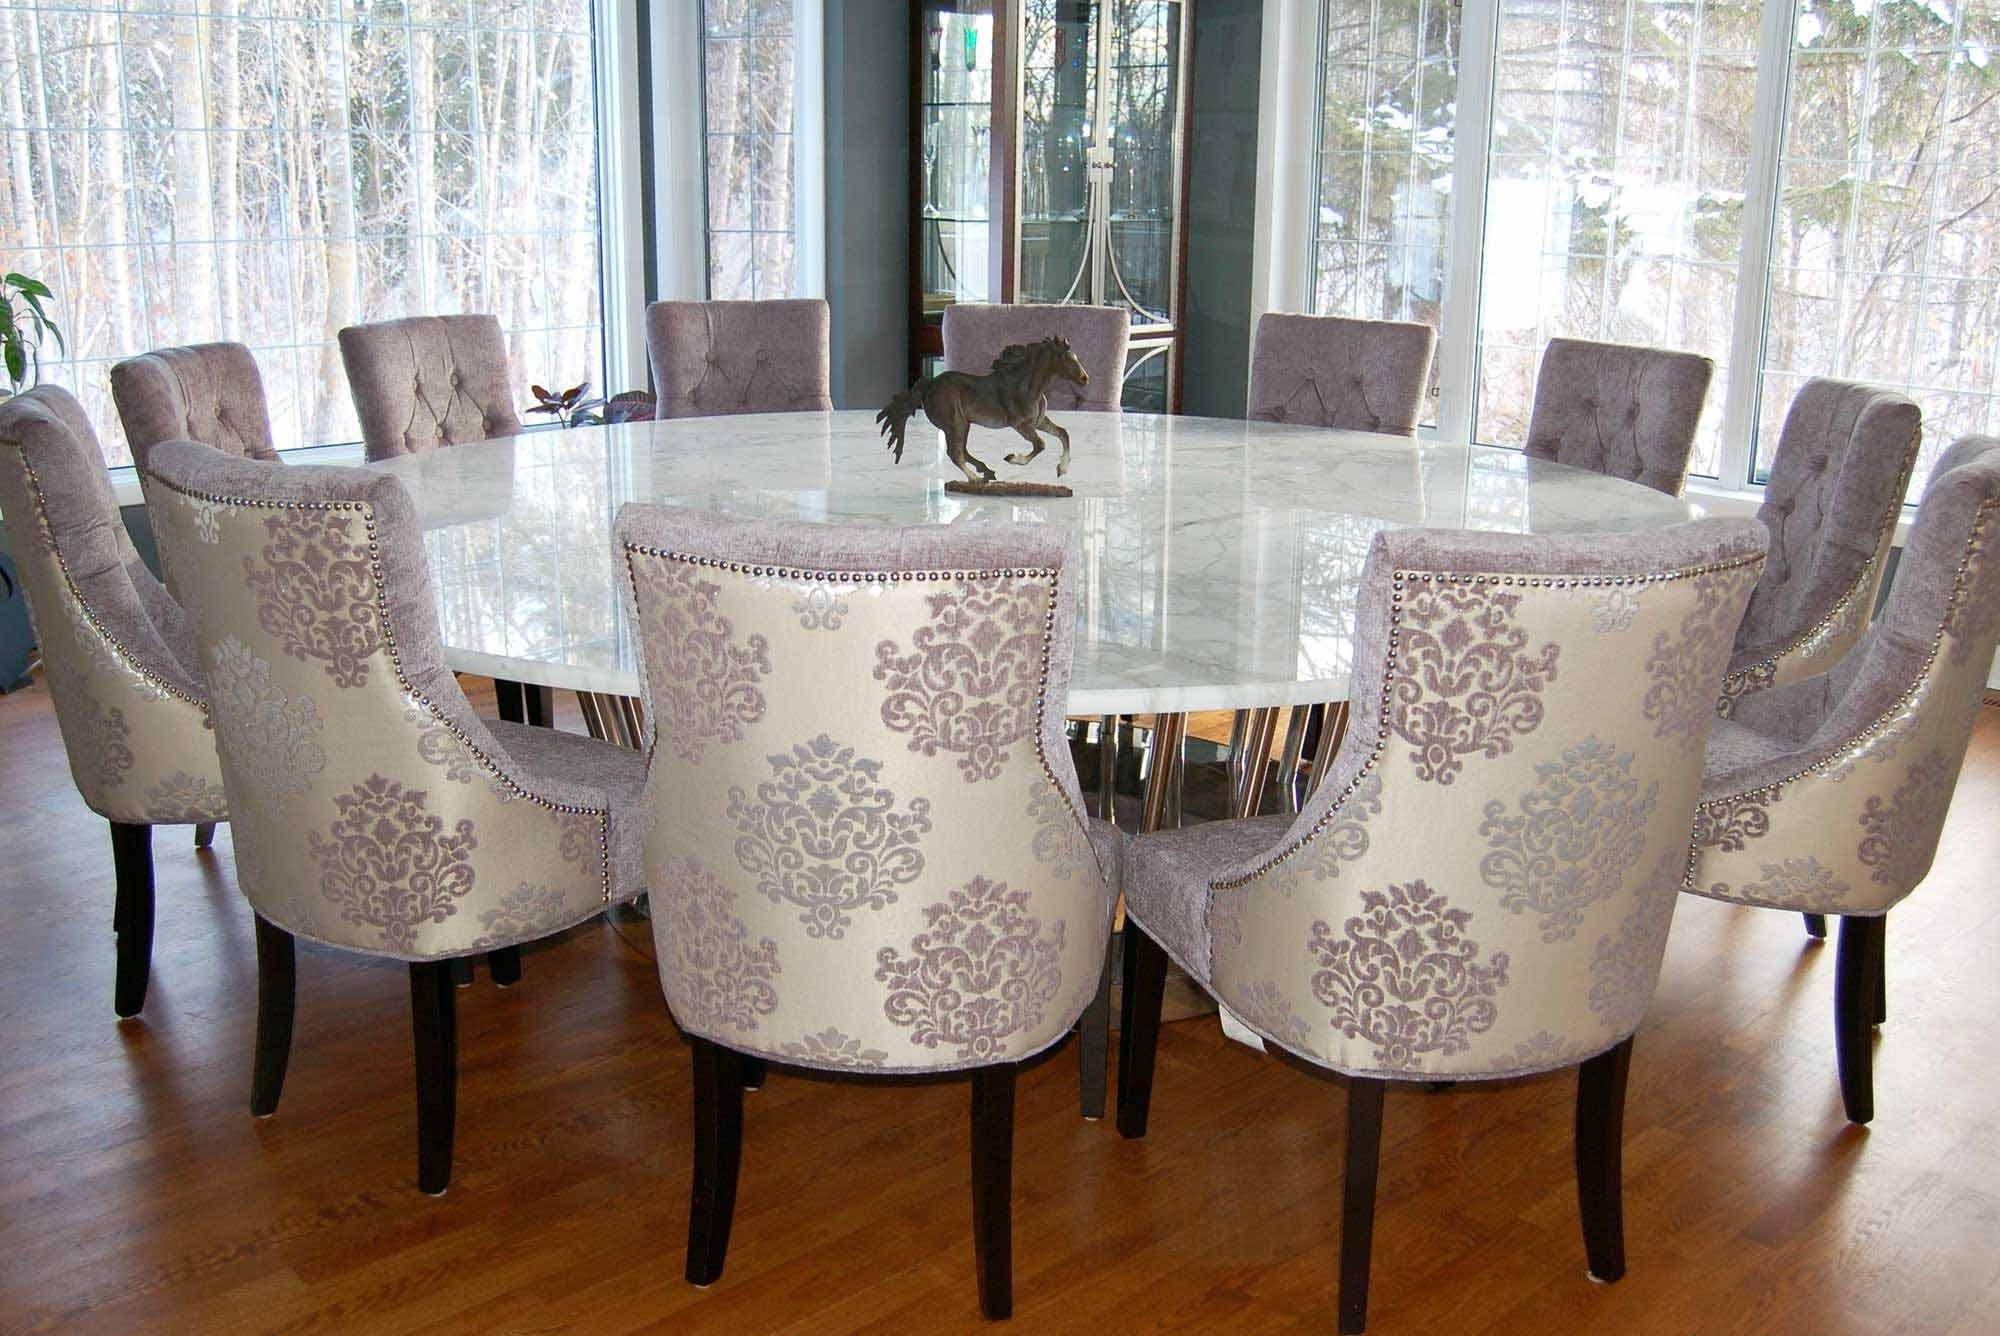 Dining Tables Marvellous Large Round Dining Table Seats 10 Round In Favorite Huge Round Dining Tables (View 4 of 25)